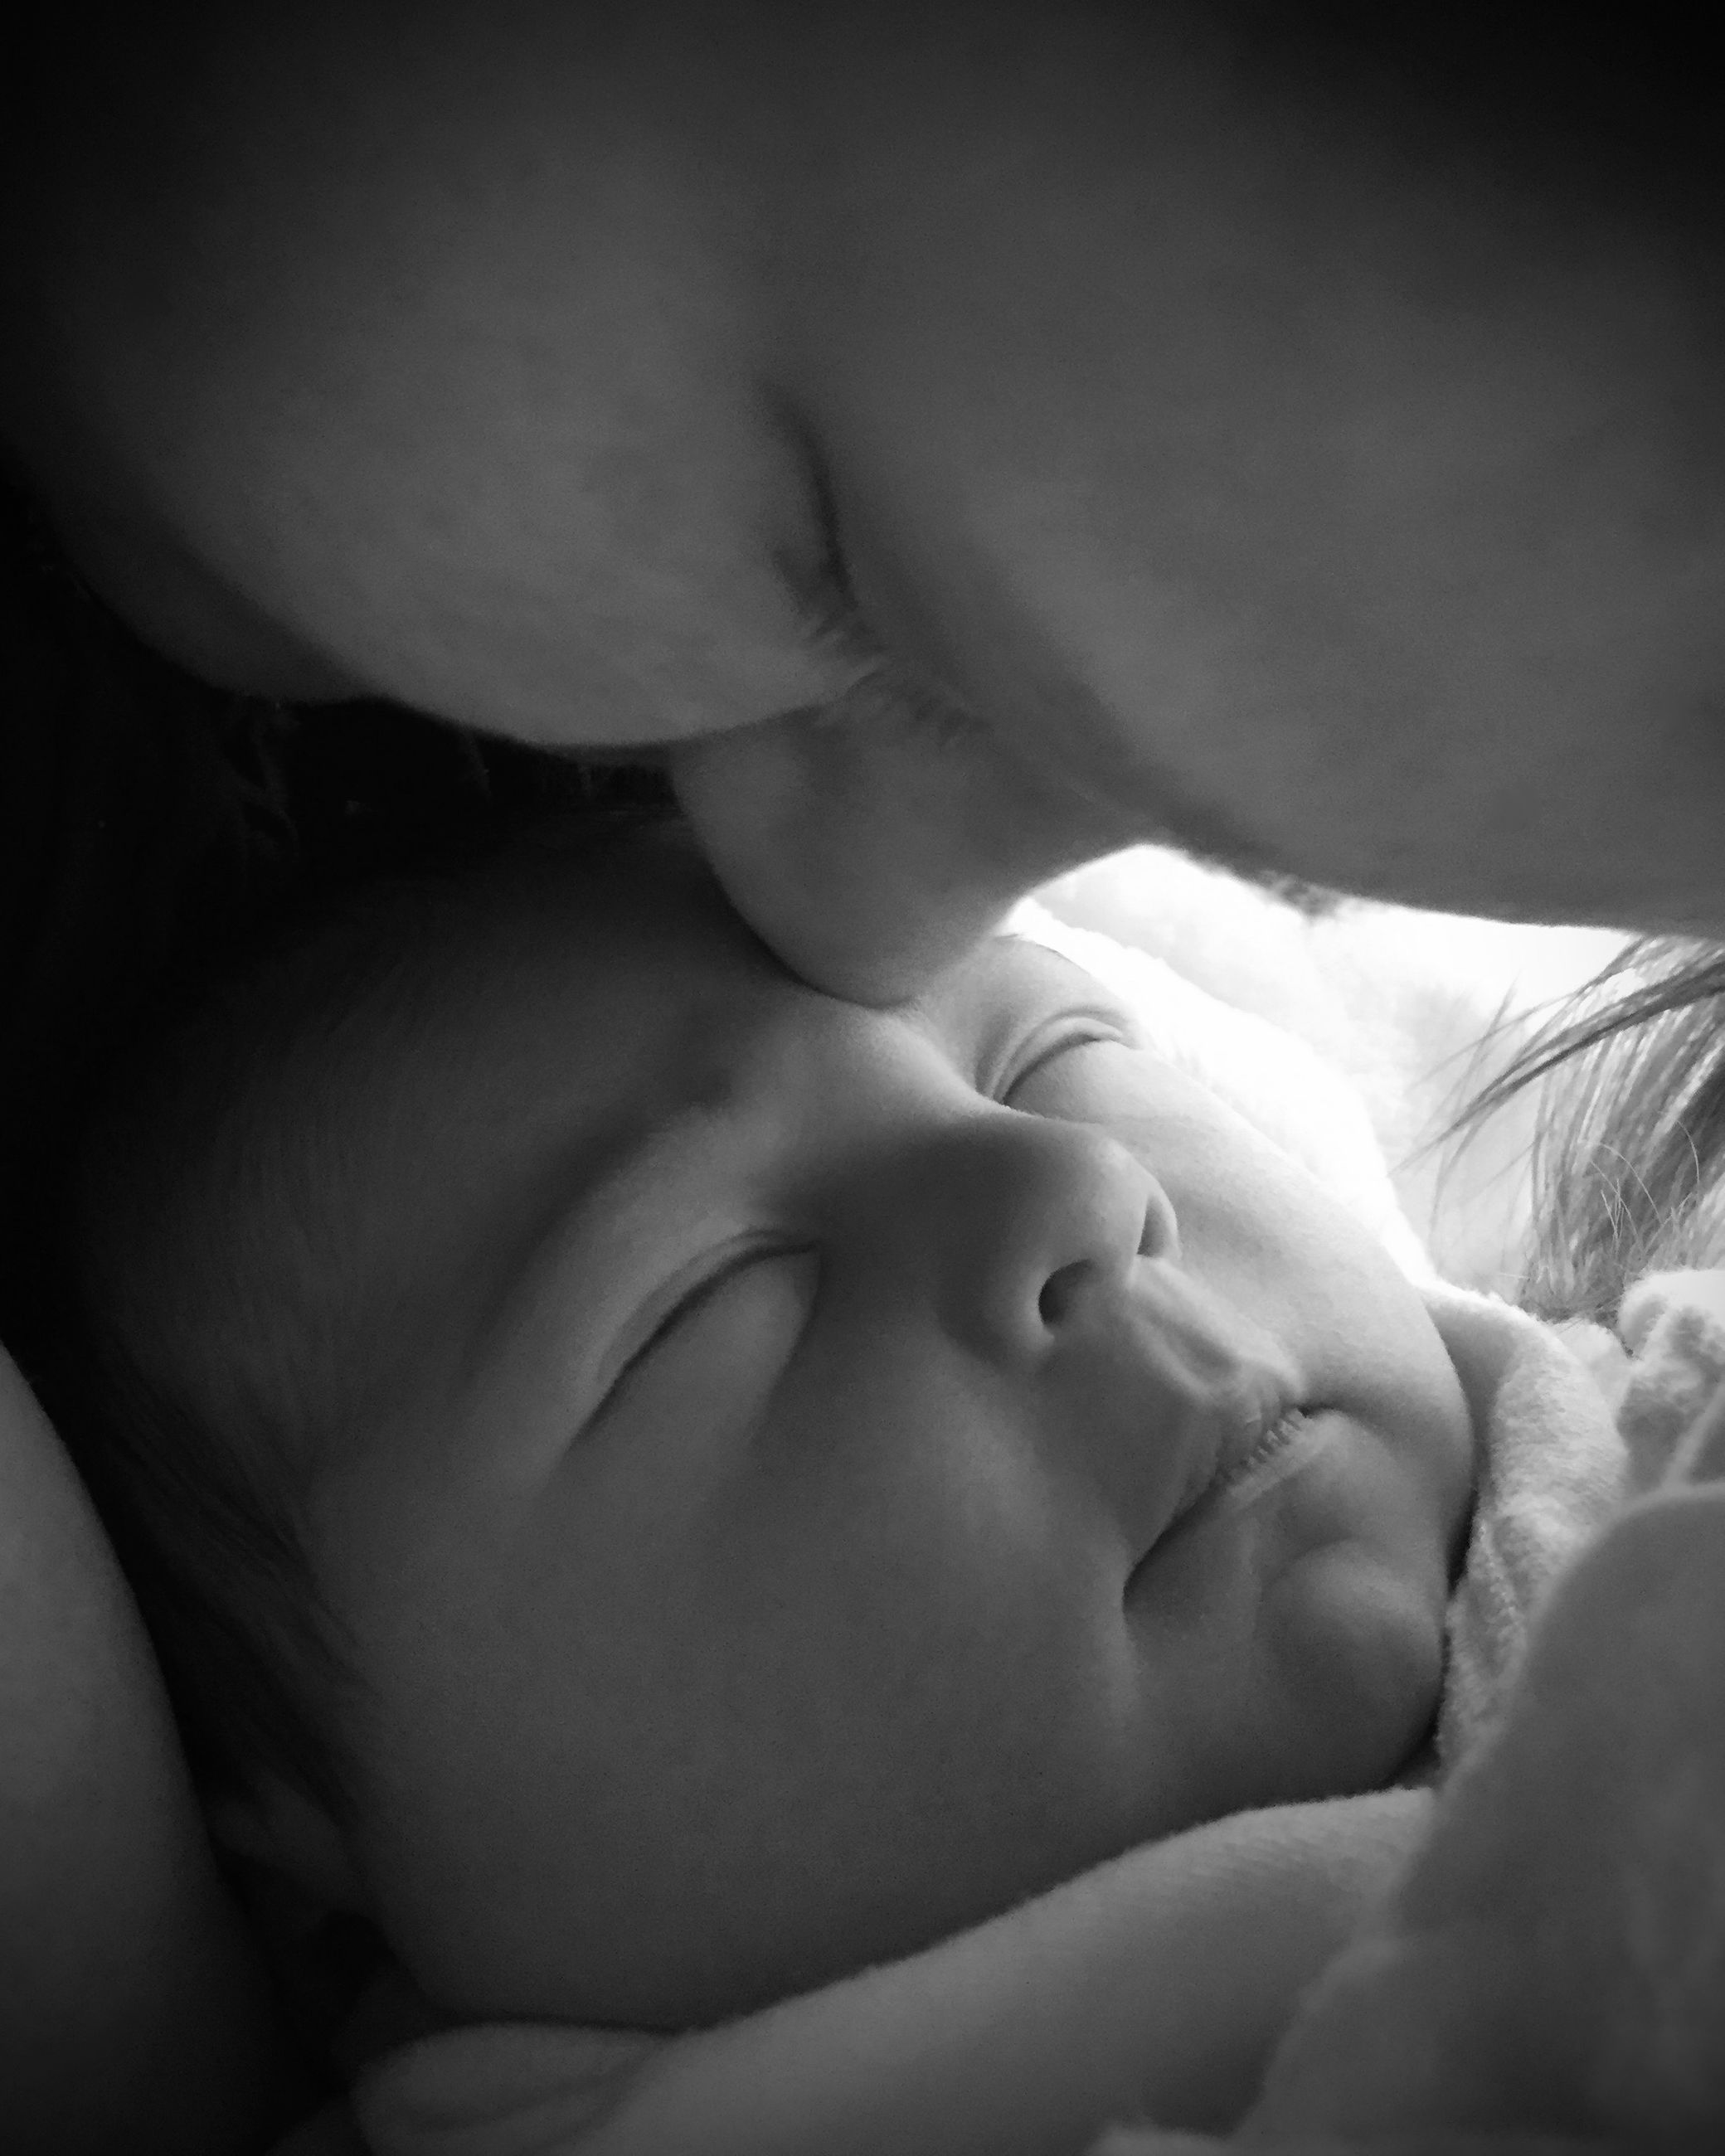 childhood, baby, innocence, babyhood, sleeping, toddler, unknown gender, lifestyles, family with one child, cute, bed, relaxation, leisure activity, lying down, family, close-up, eyes closed, beginnings, resting, new life